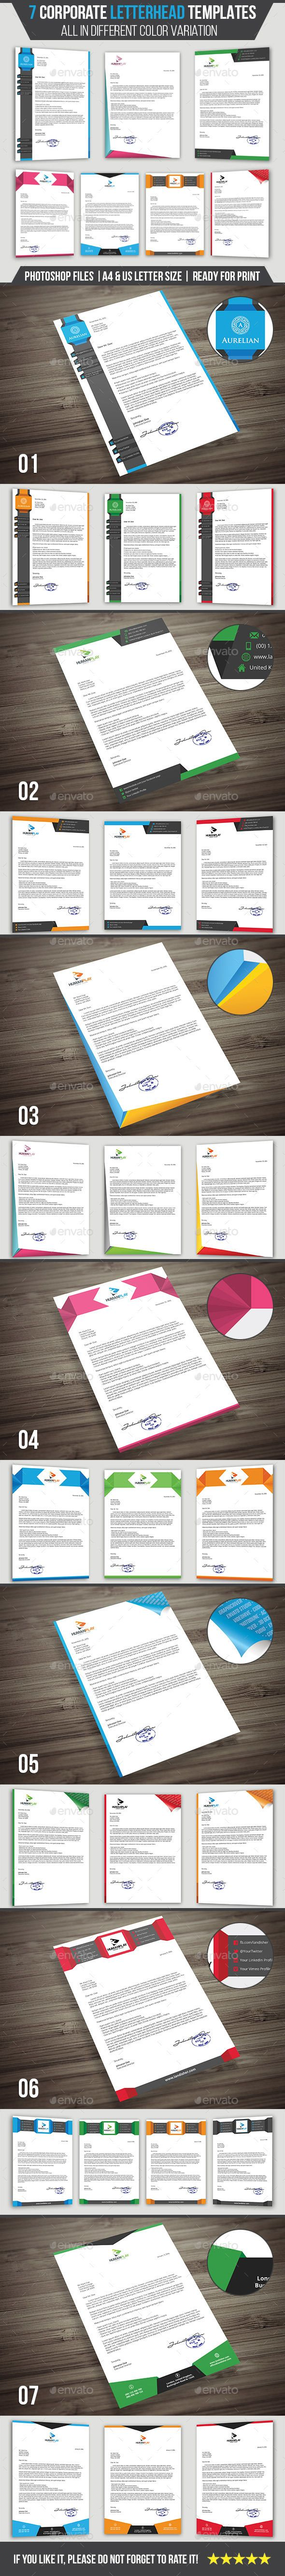 7 #Corporate #Letterhead Templates Pack - #Stationery #Print #Clean and #modern 7-piece template pack suitable for #company #letterheads, #documents and #presentations.